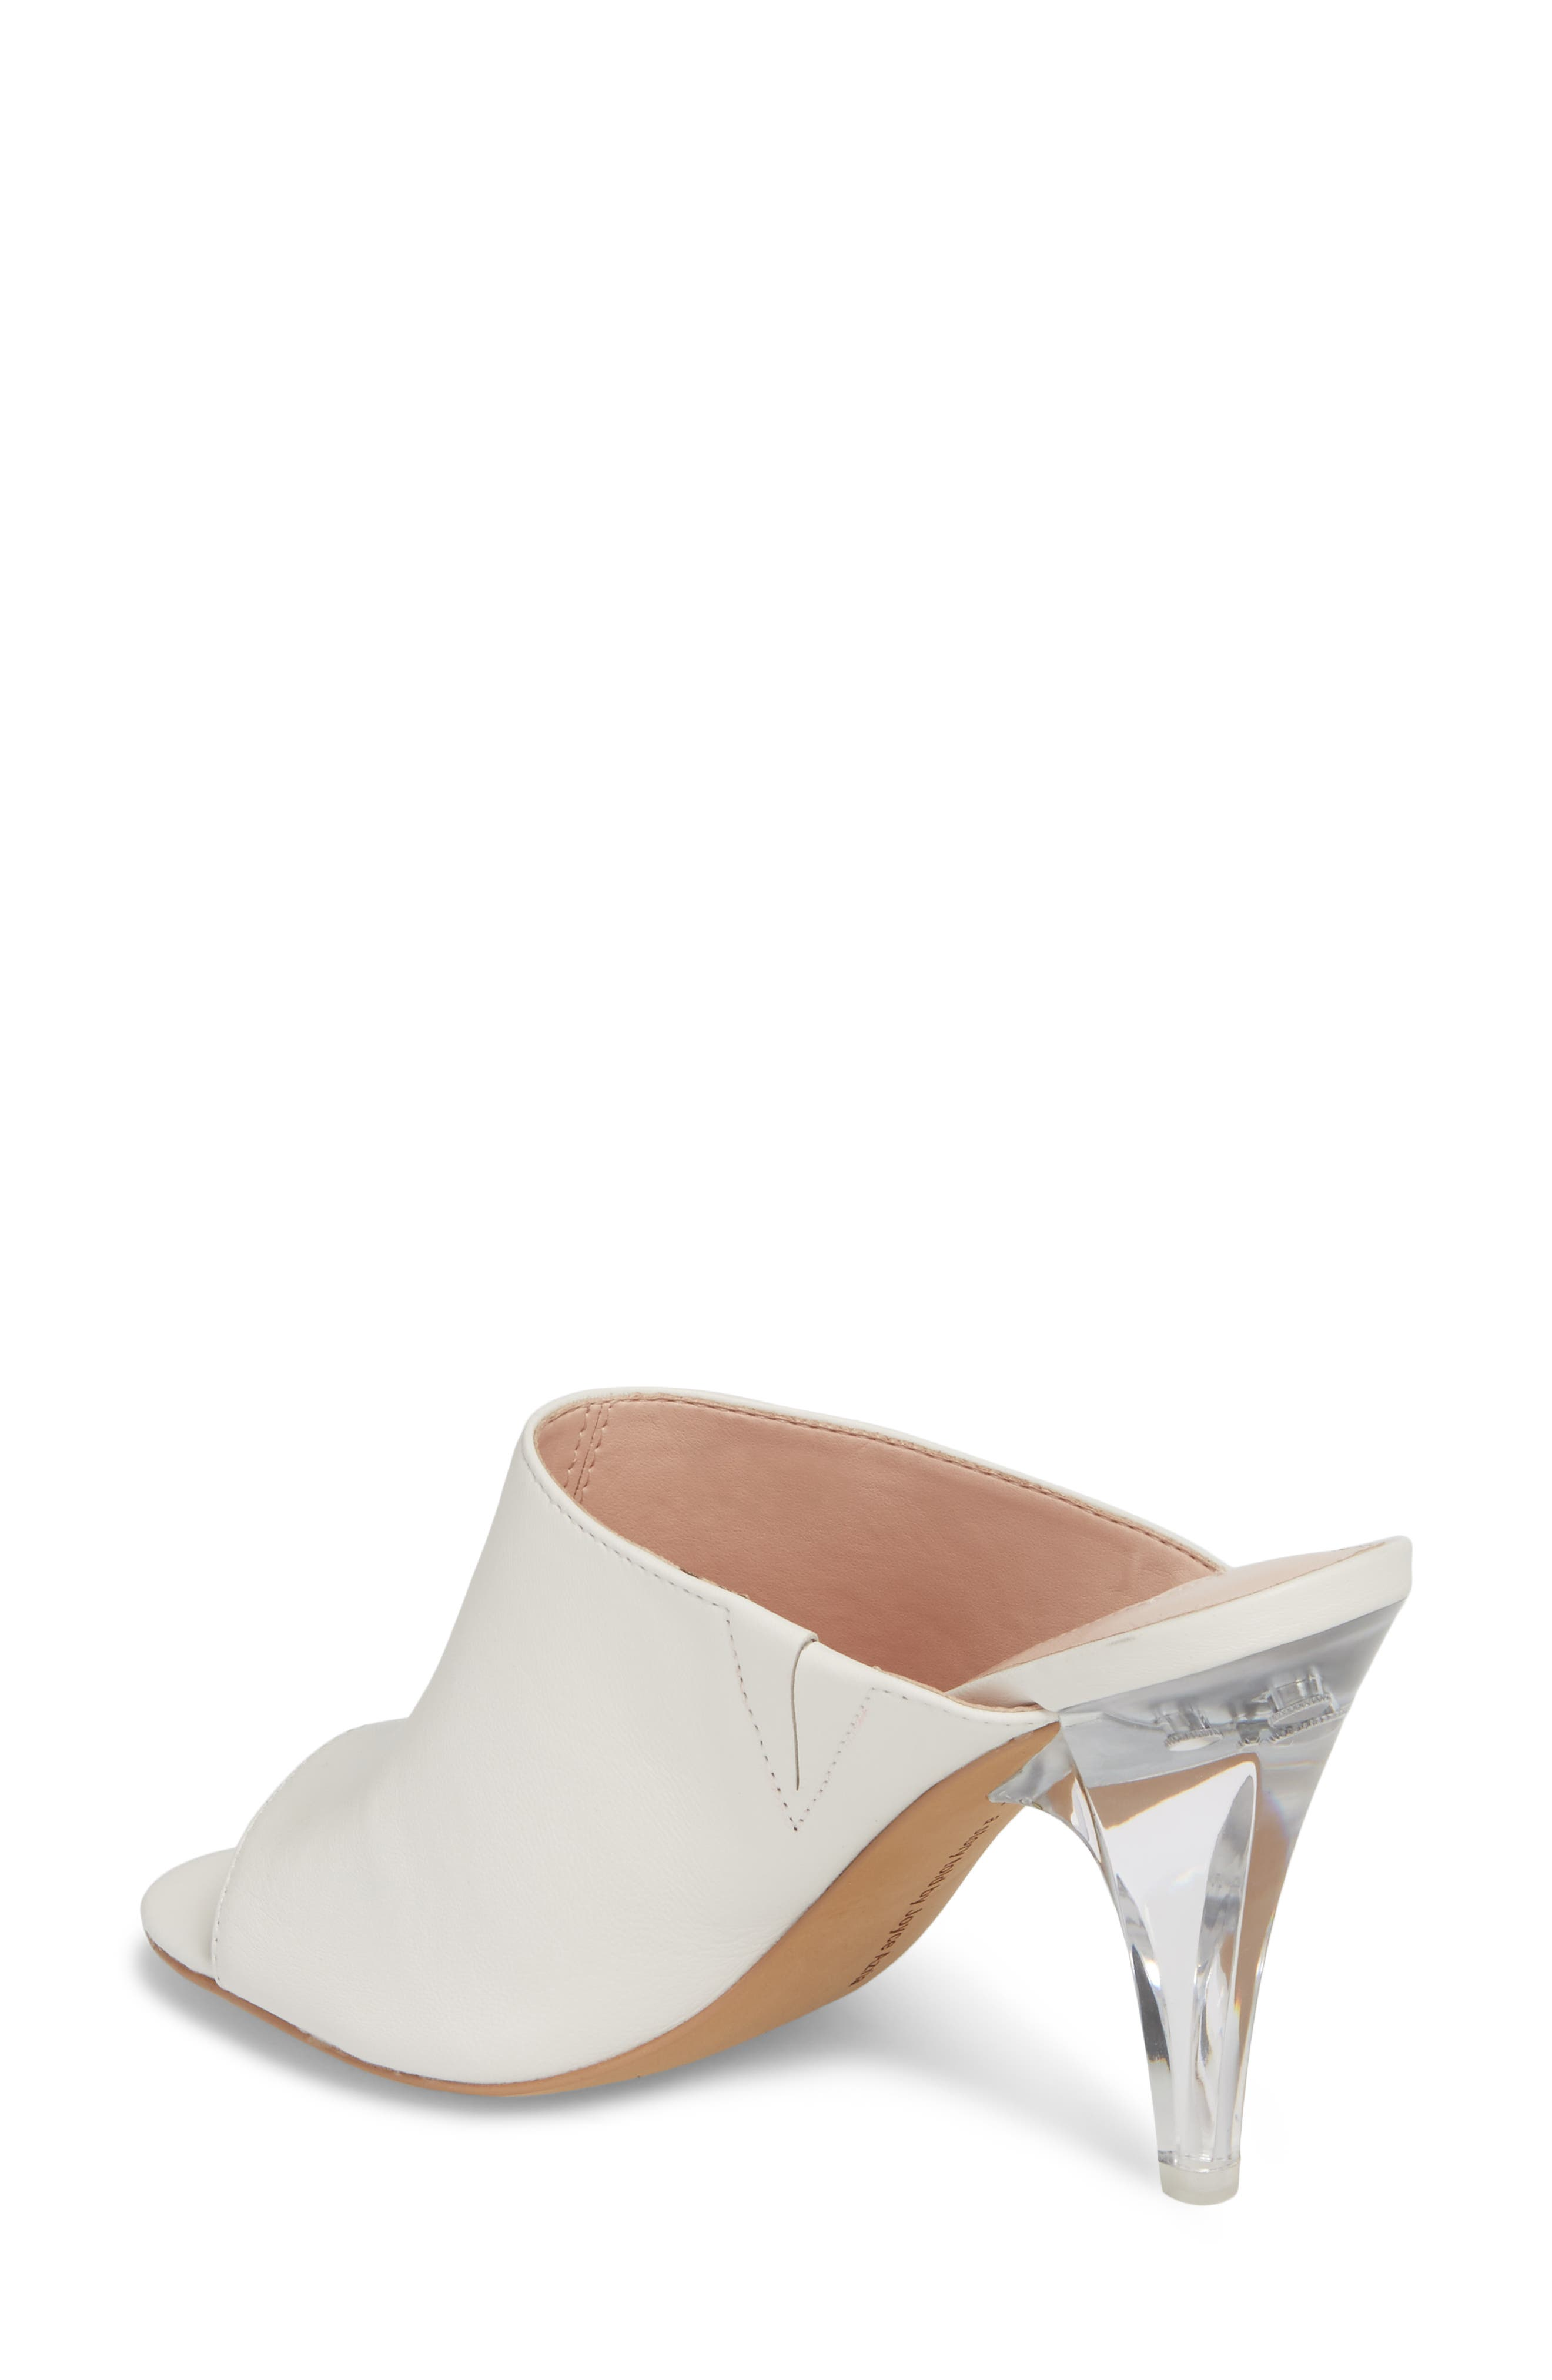 Jazz Off Sandal,                             Alternate thumbnail 2, color,                             Off White Leather